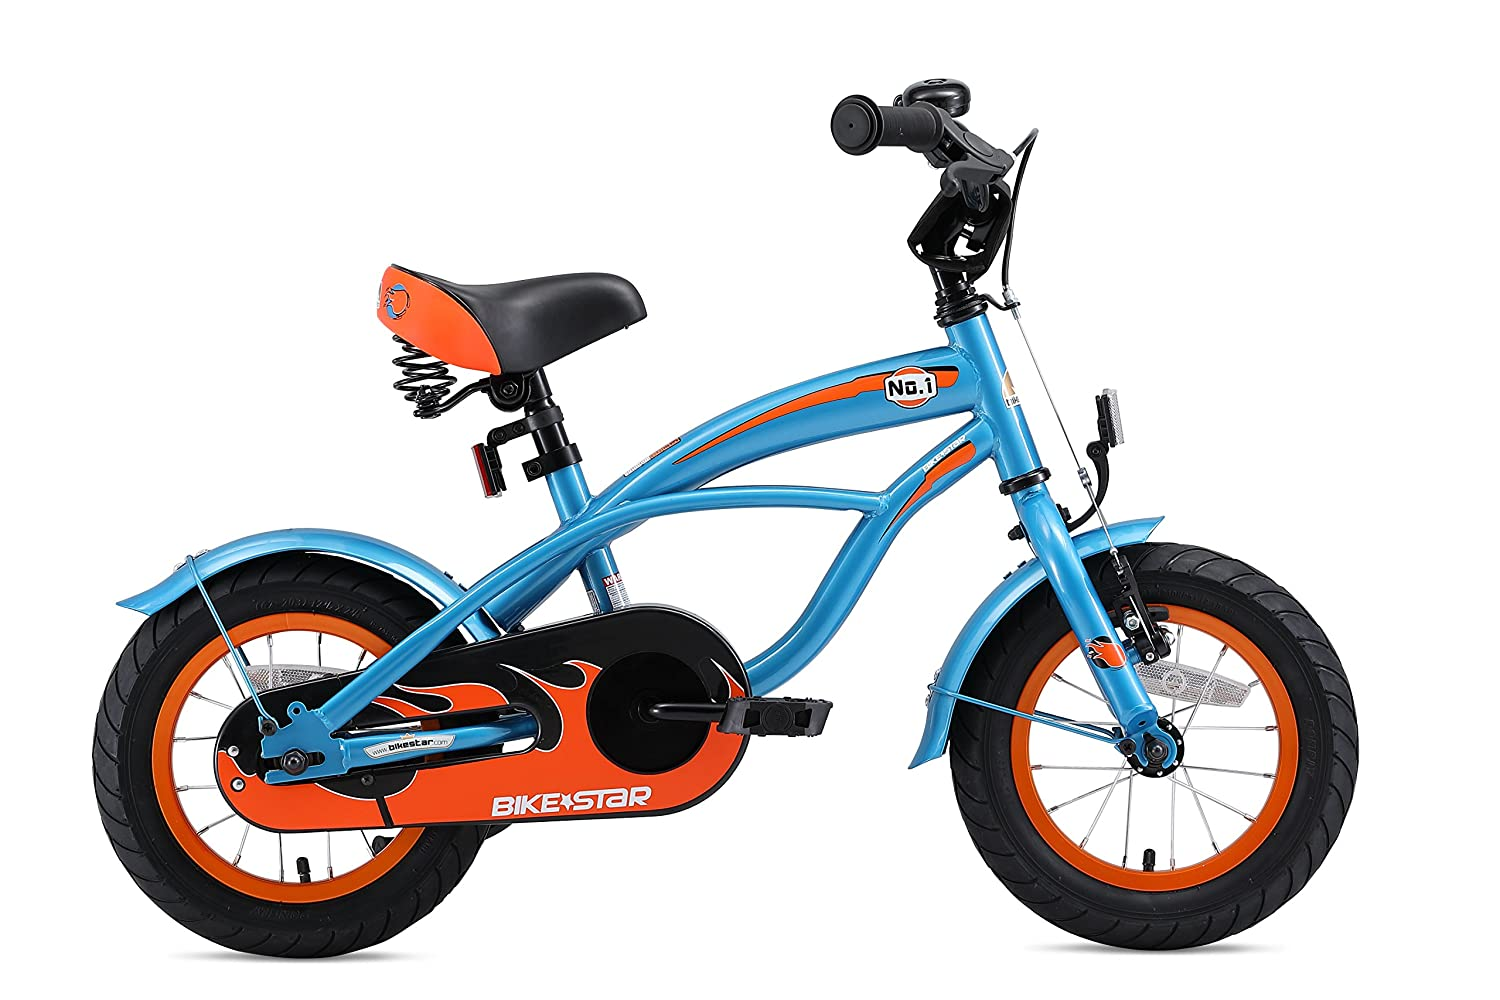 fdb338e8375 Amazon.com : BIKESTAR Original Premium Safety Sport Kids Bike with  sidestand and Accessories for Age 3 Year Old Children | 12 Inch Cruiser  Edition for Boys ...